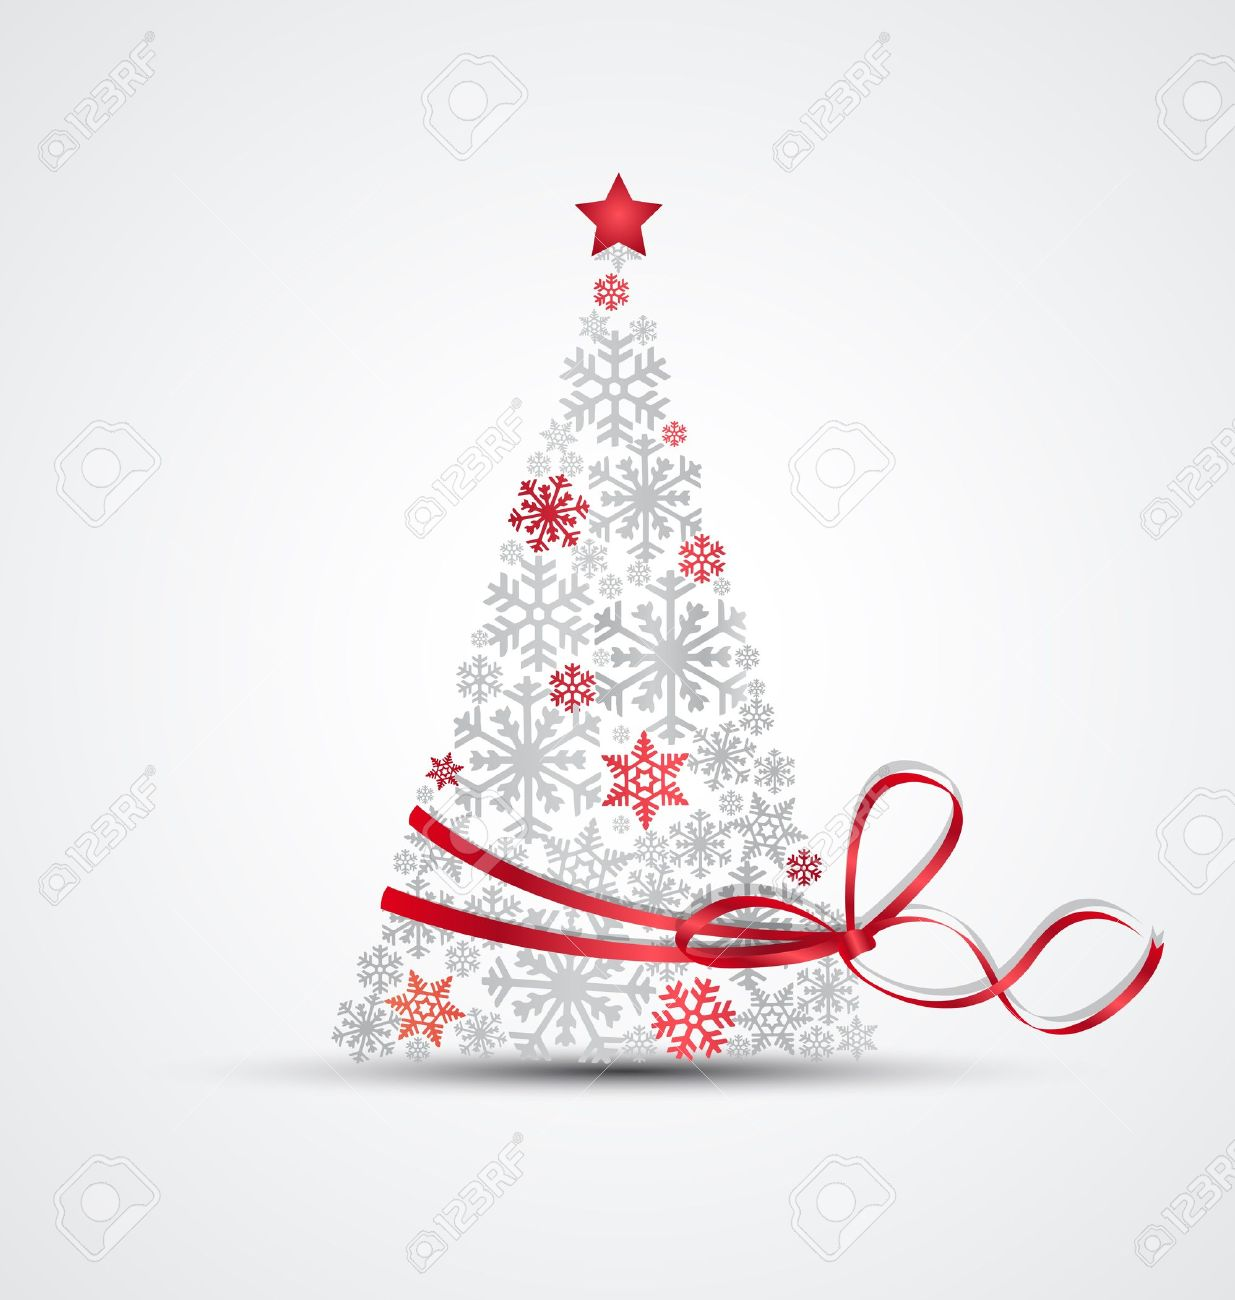 Christmas tree made from snowflakes with ribbon Stock Vector - 15658653